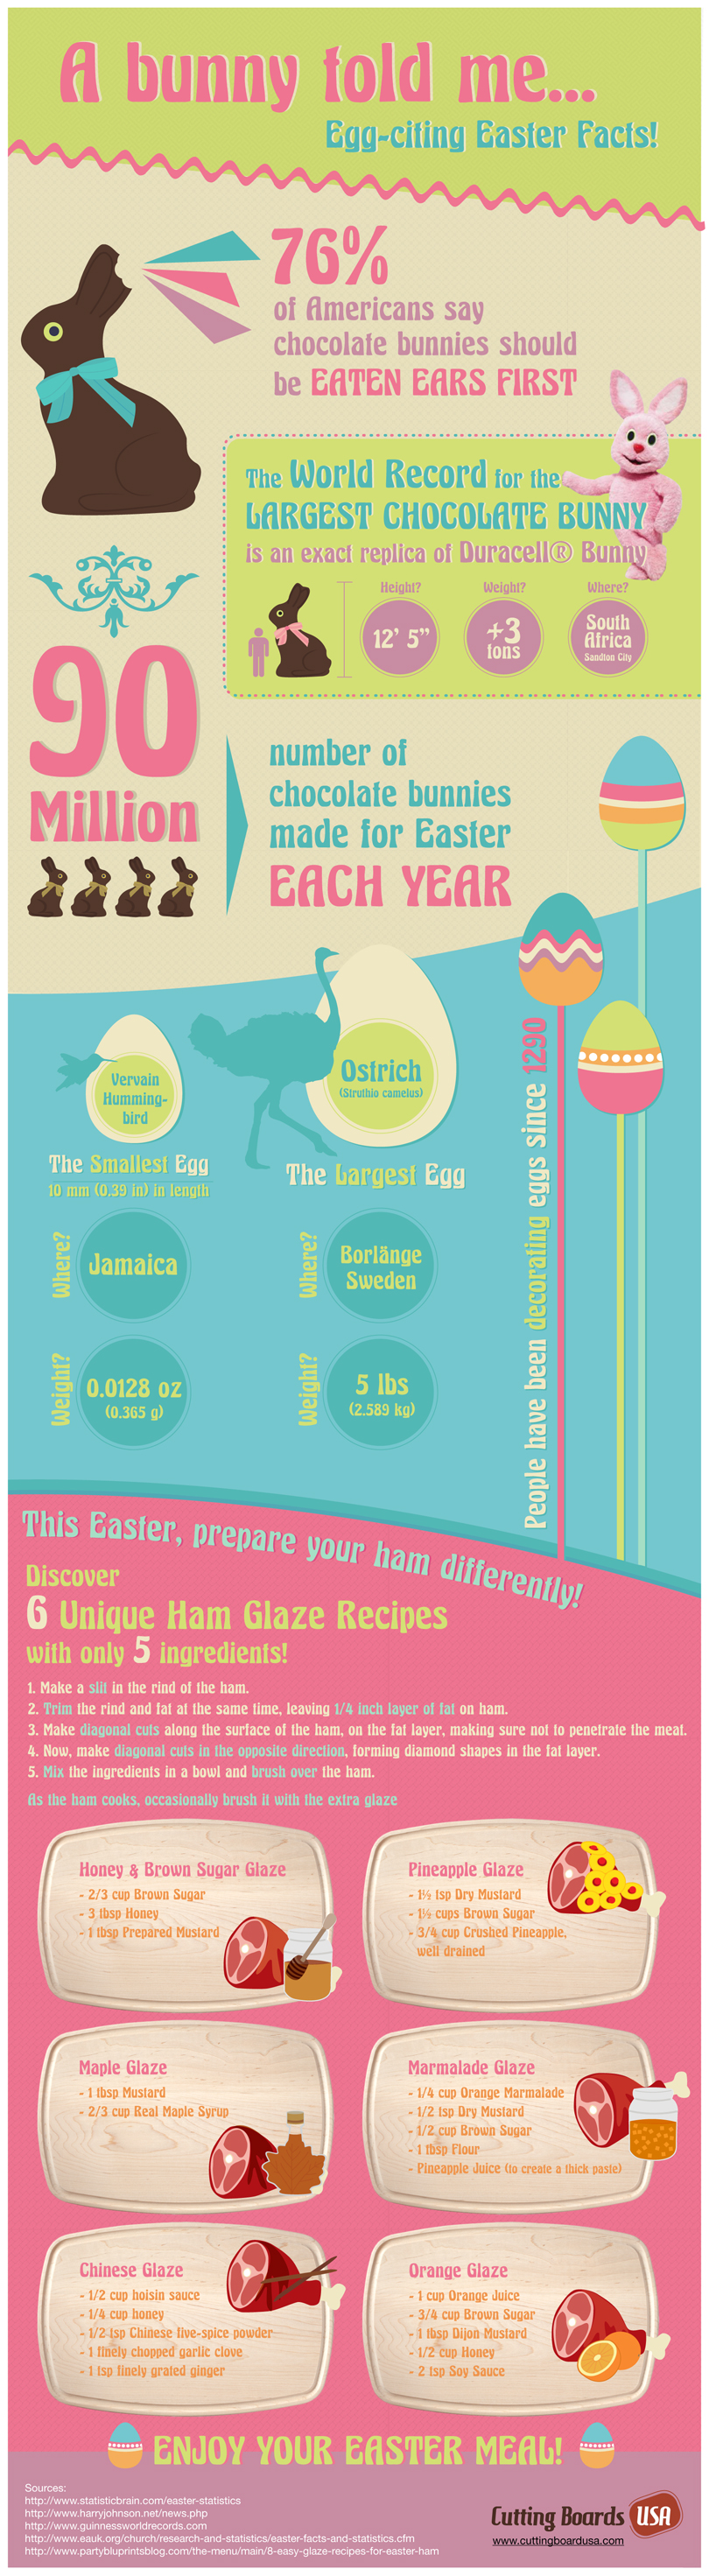 Fun easter facts tasty ham glaze recipes infographic for Easter egg fun facts